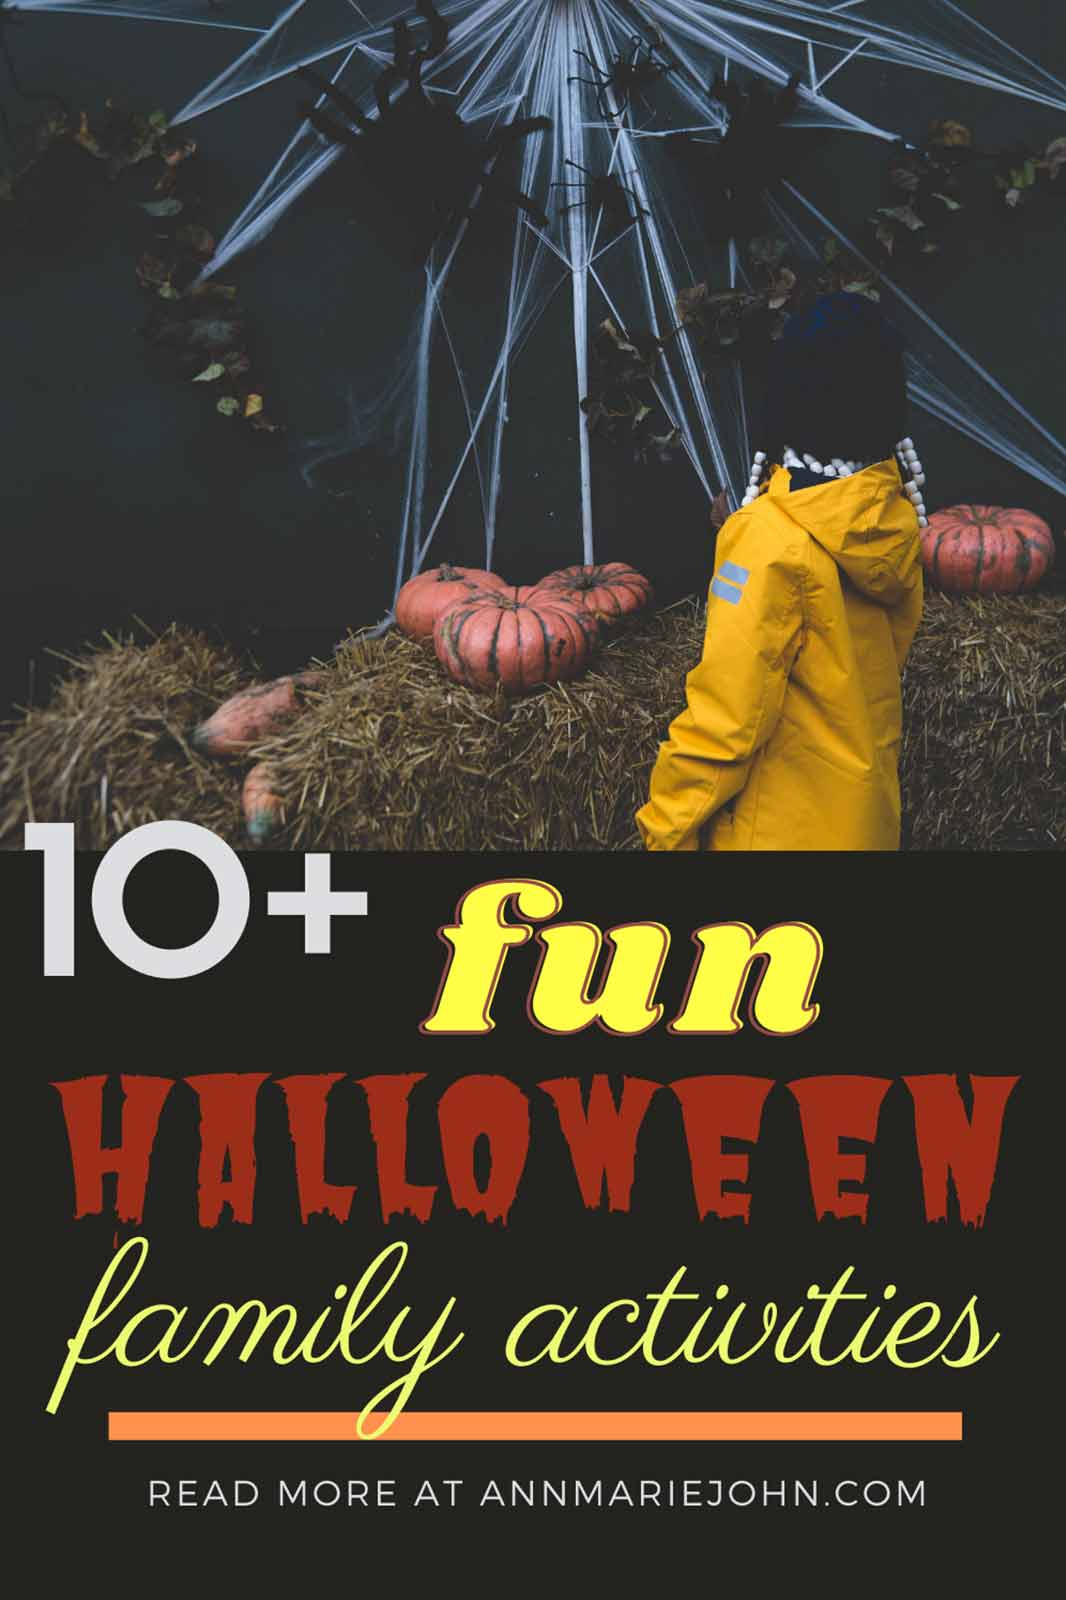 11 Fun Activities You Can do With the Whole Family on Halloween